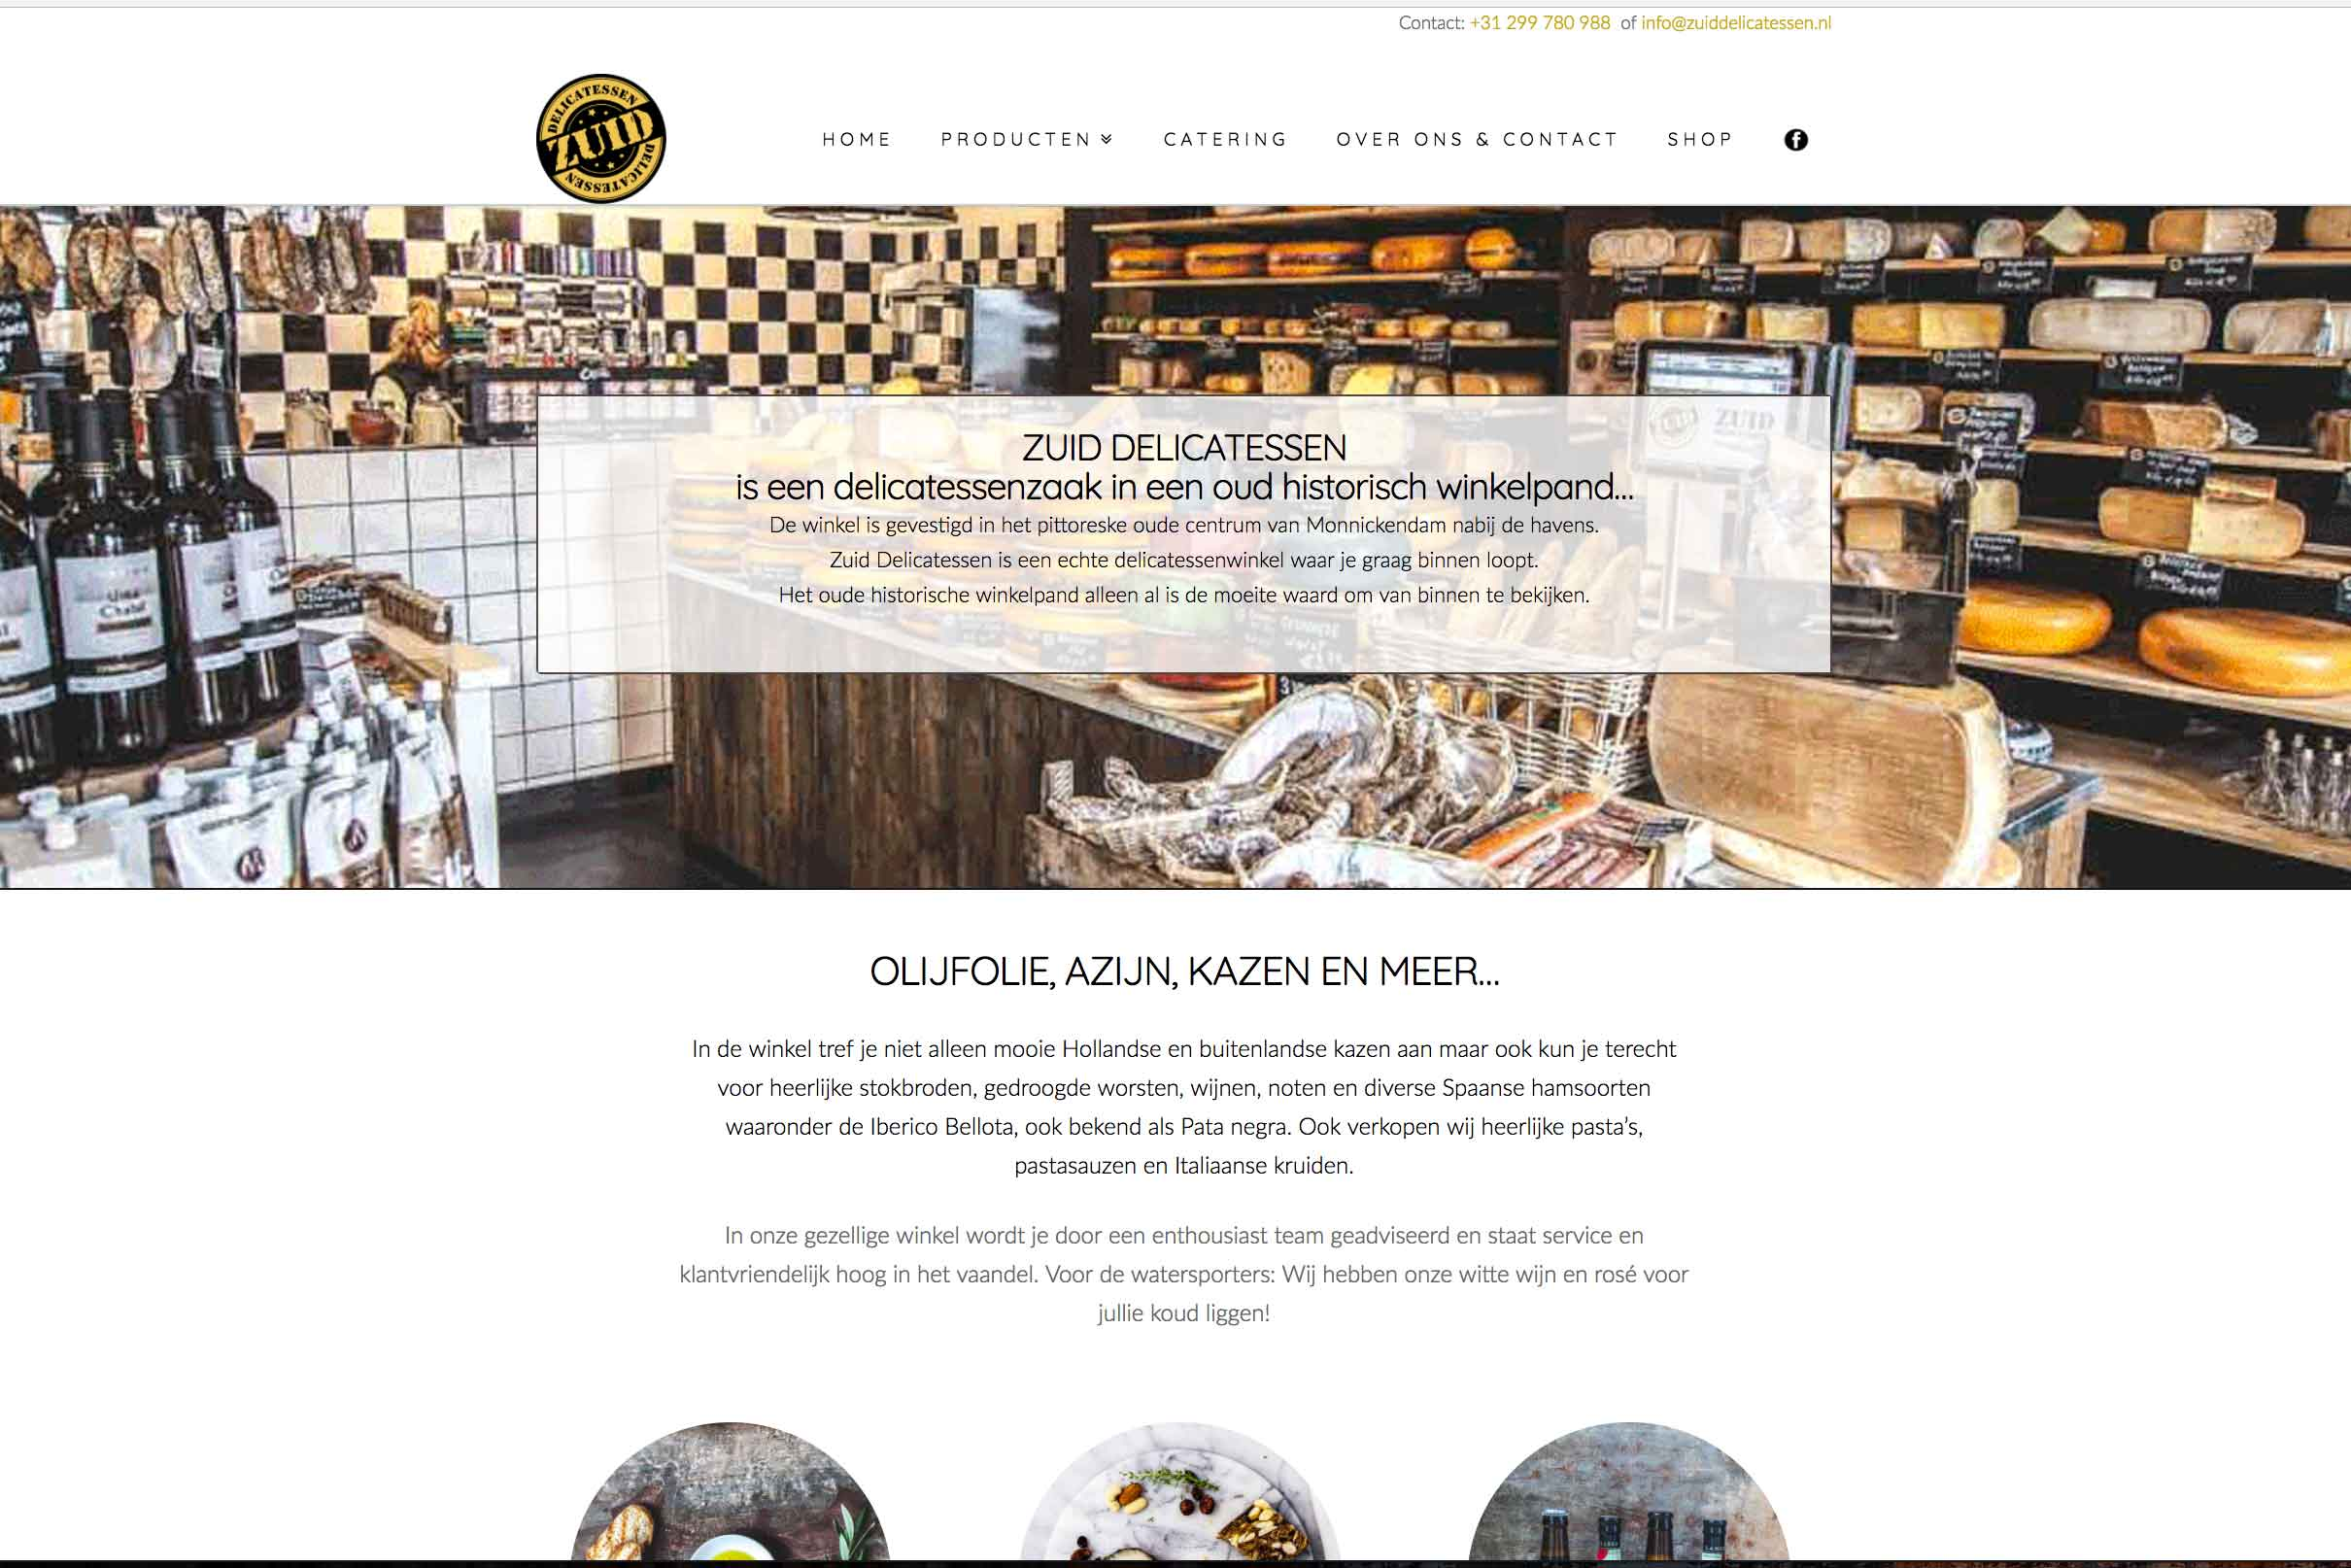 marleenvisser_digital_productions_zuid_delicatessen